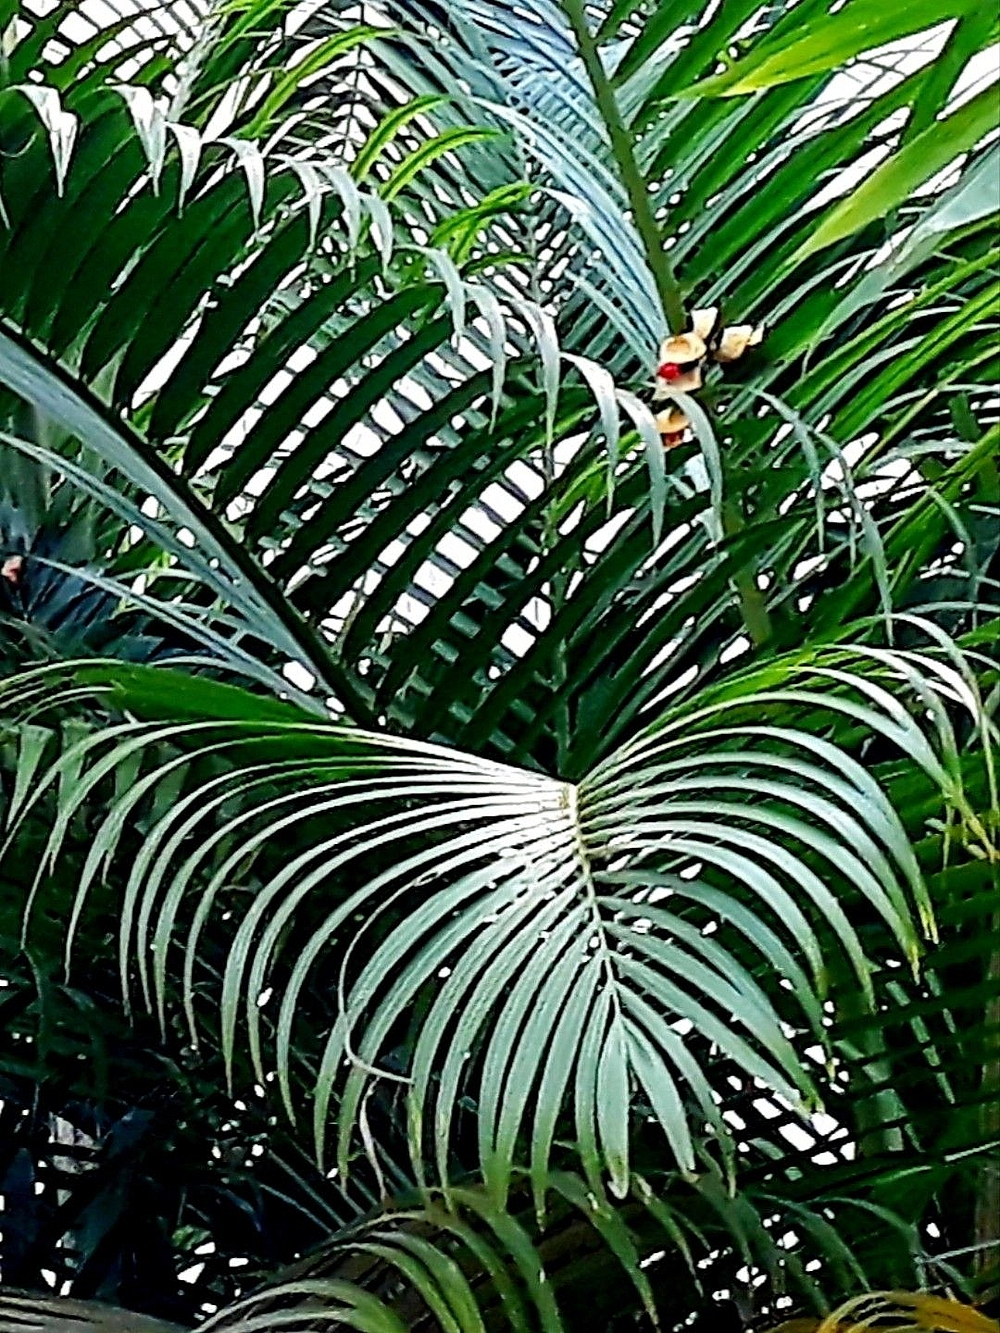 The Palm Leaves